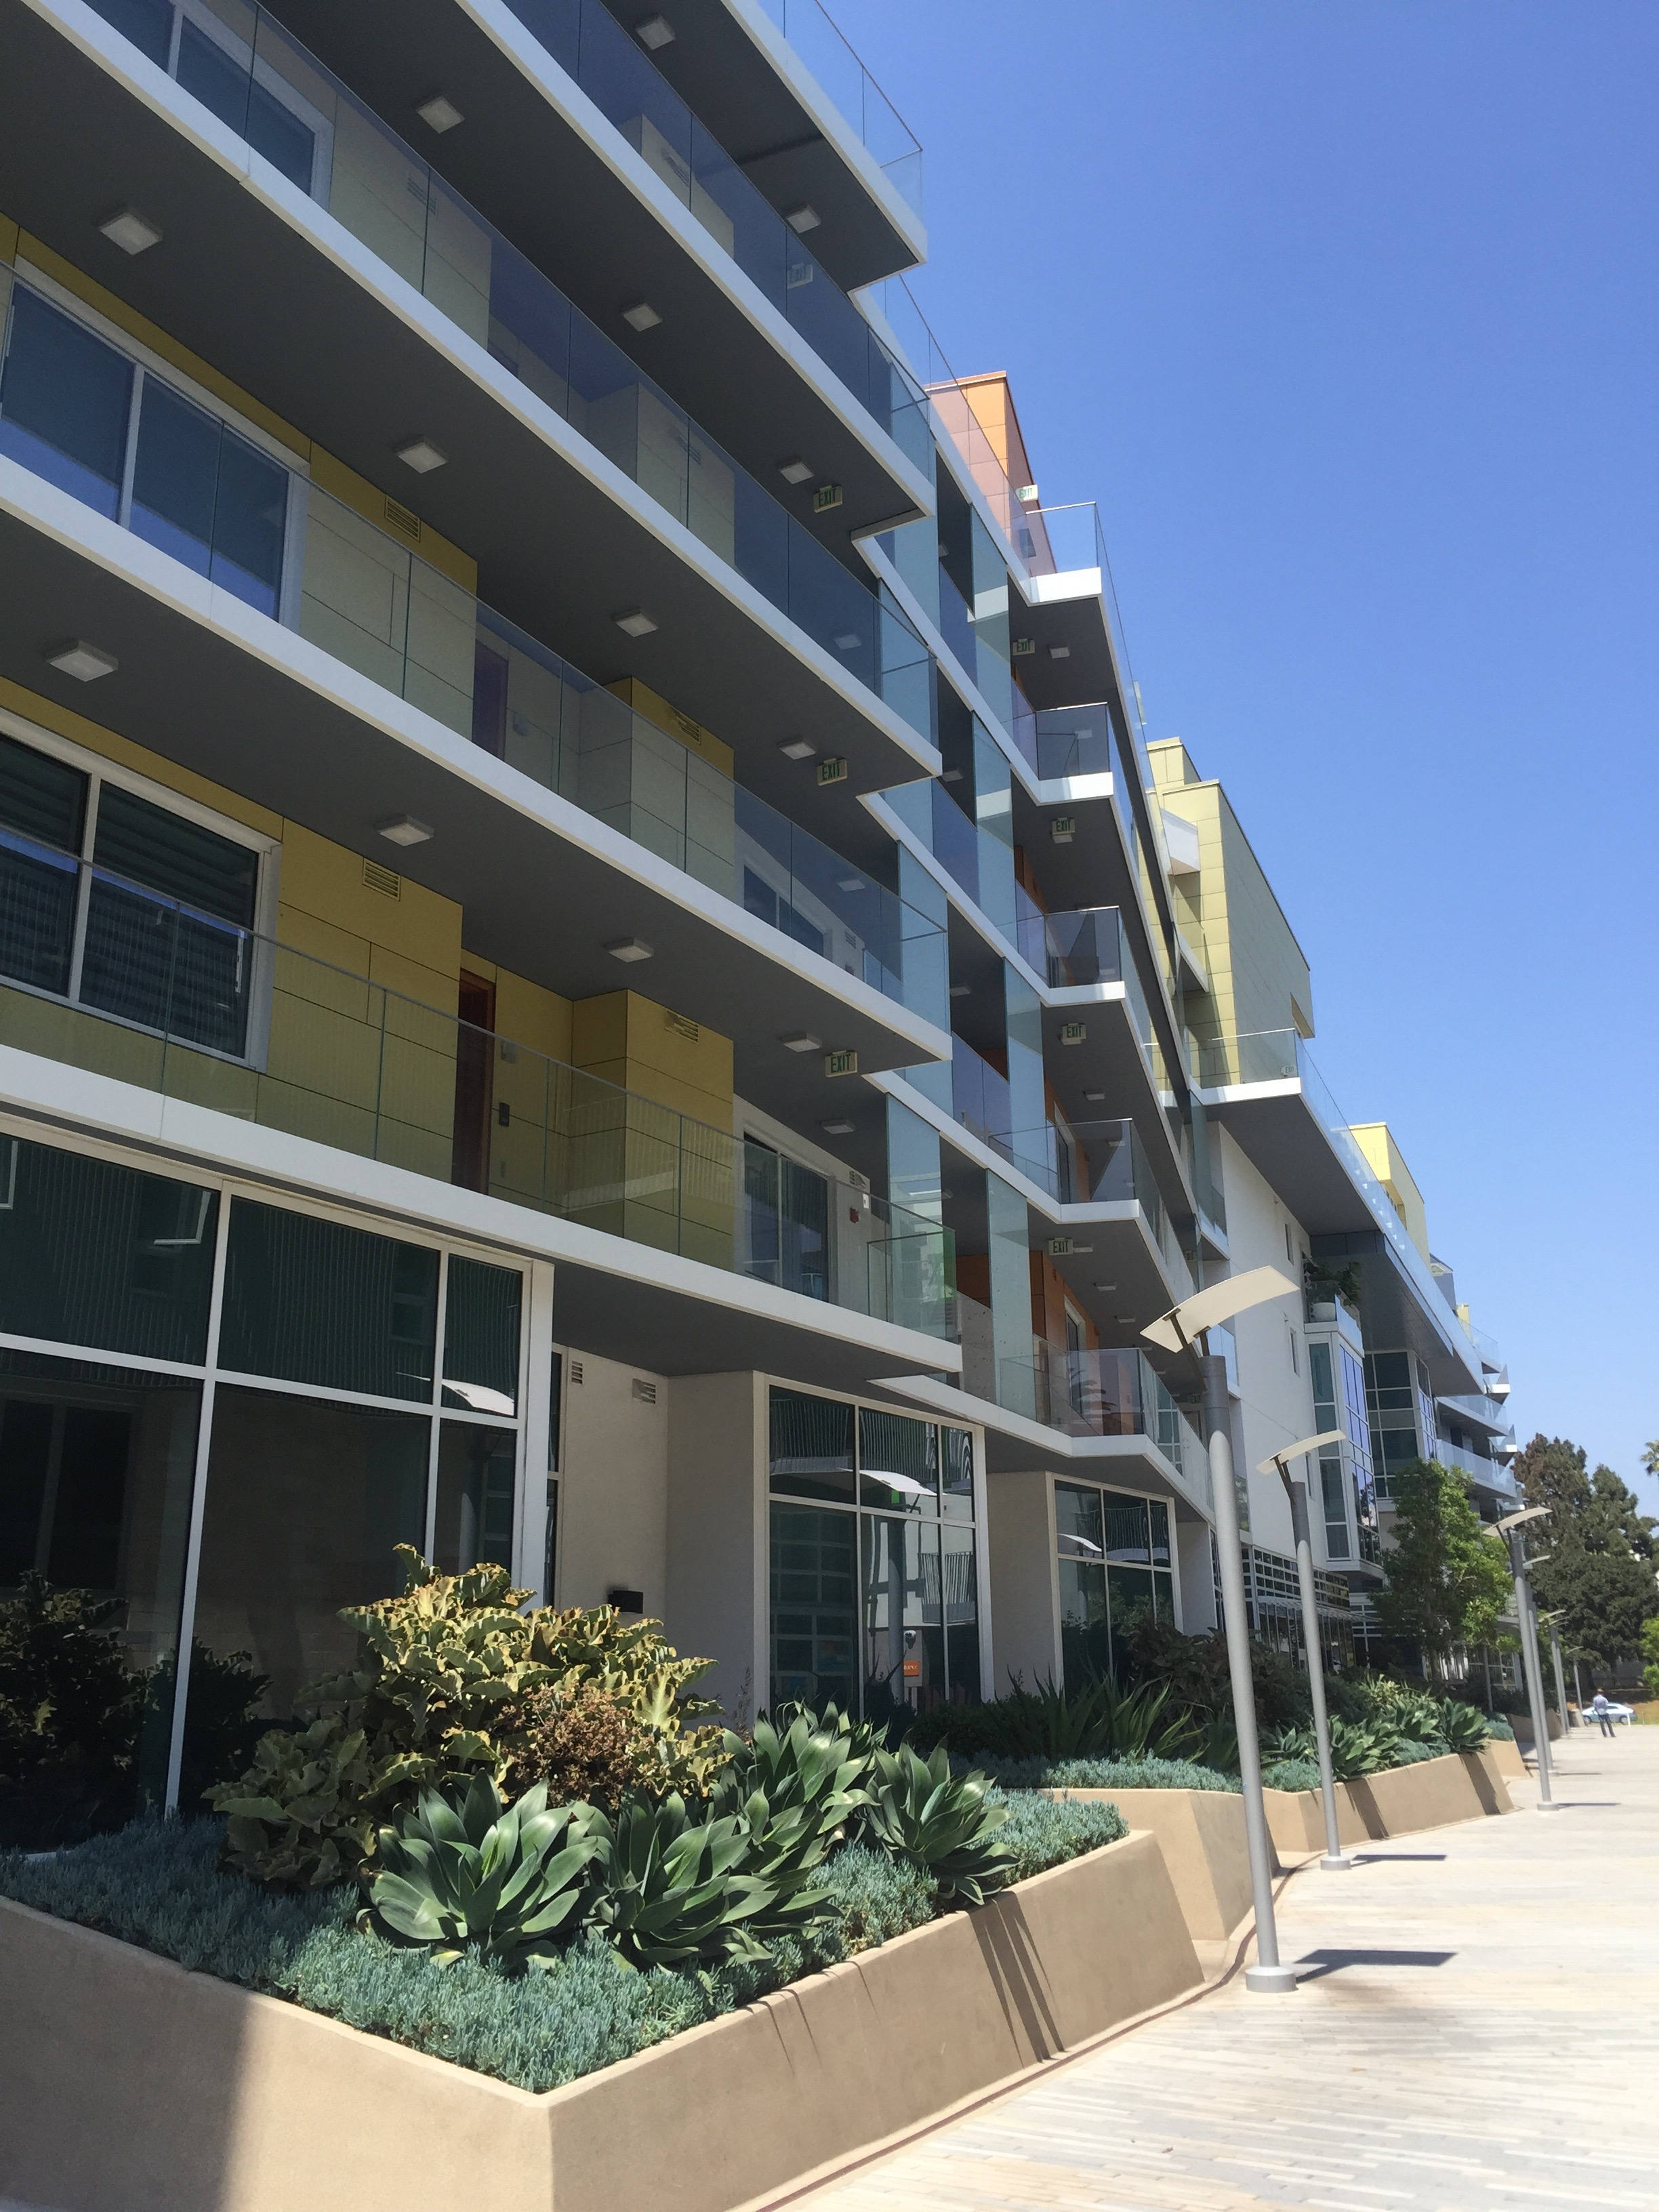 The Waverly Condo in Santa Monica